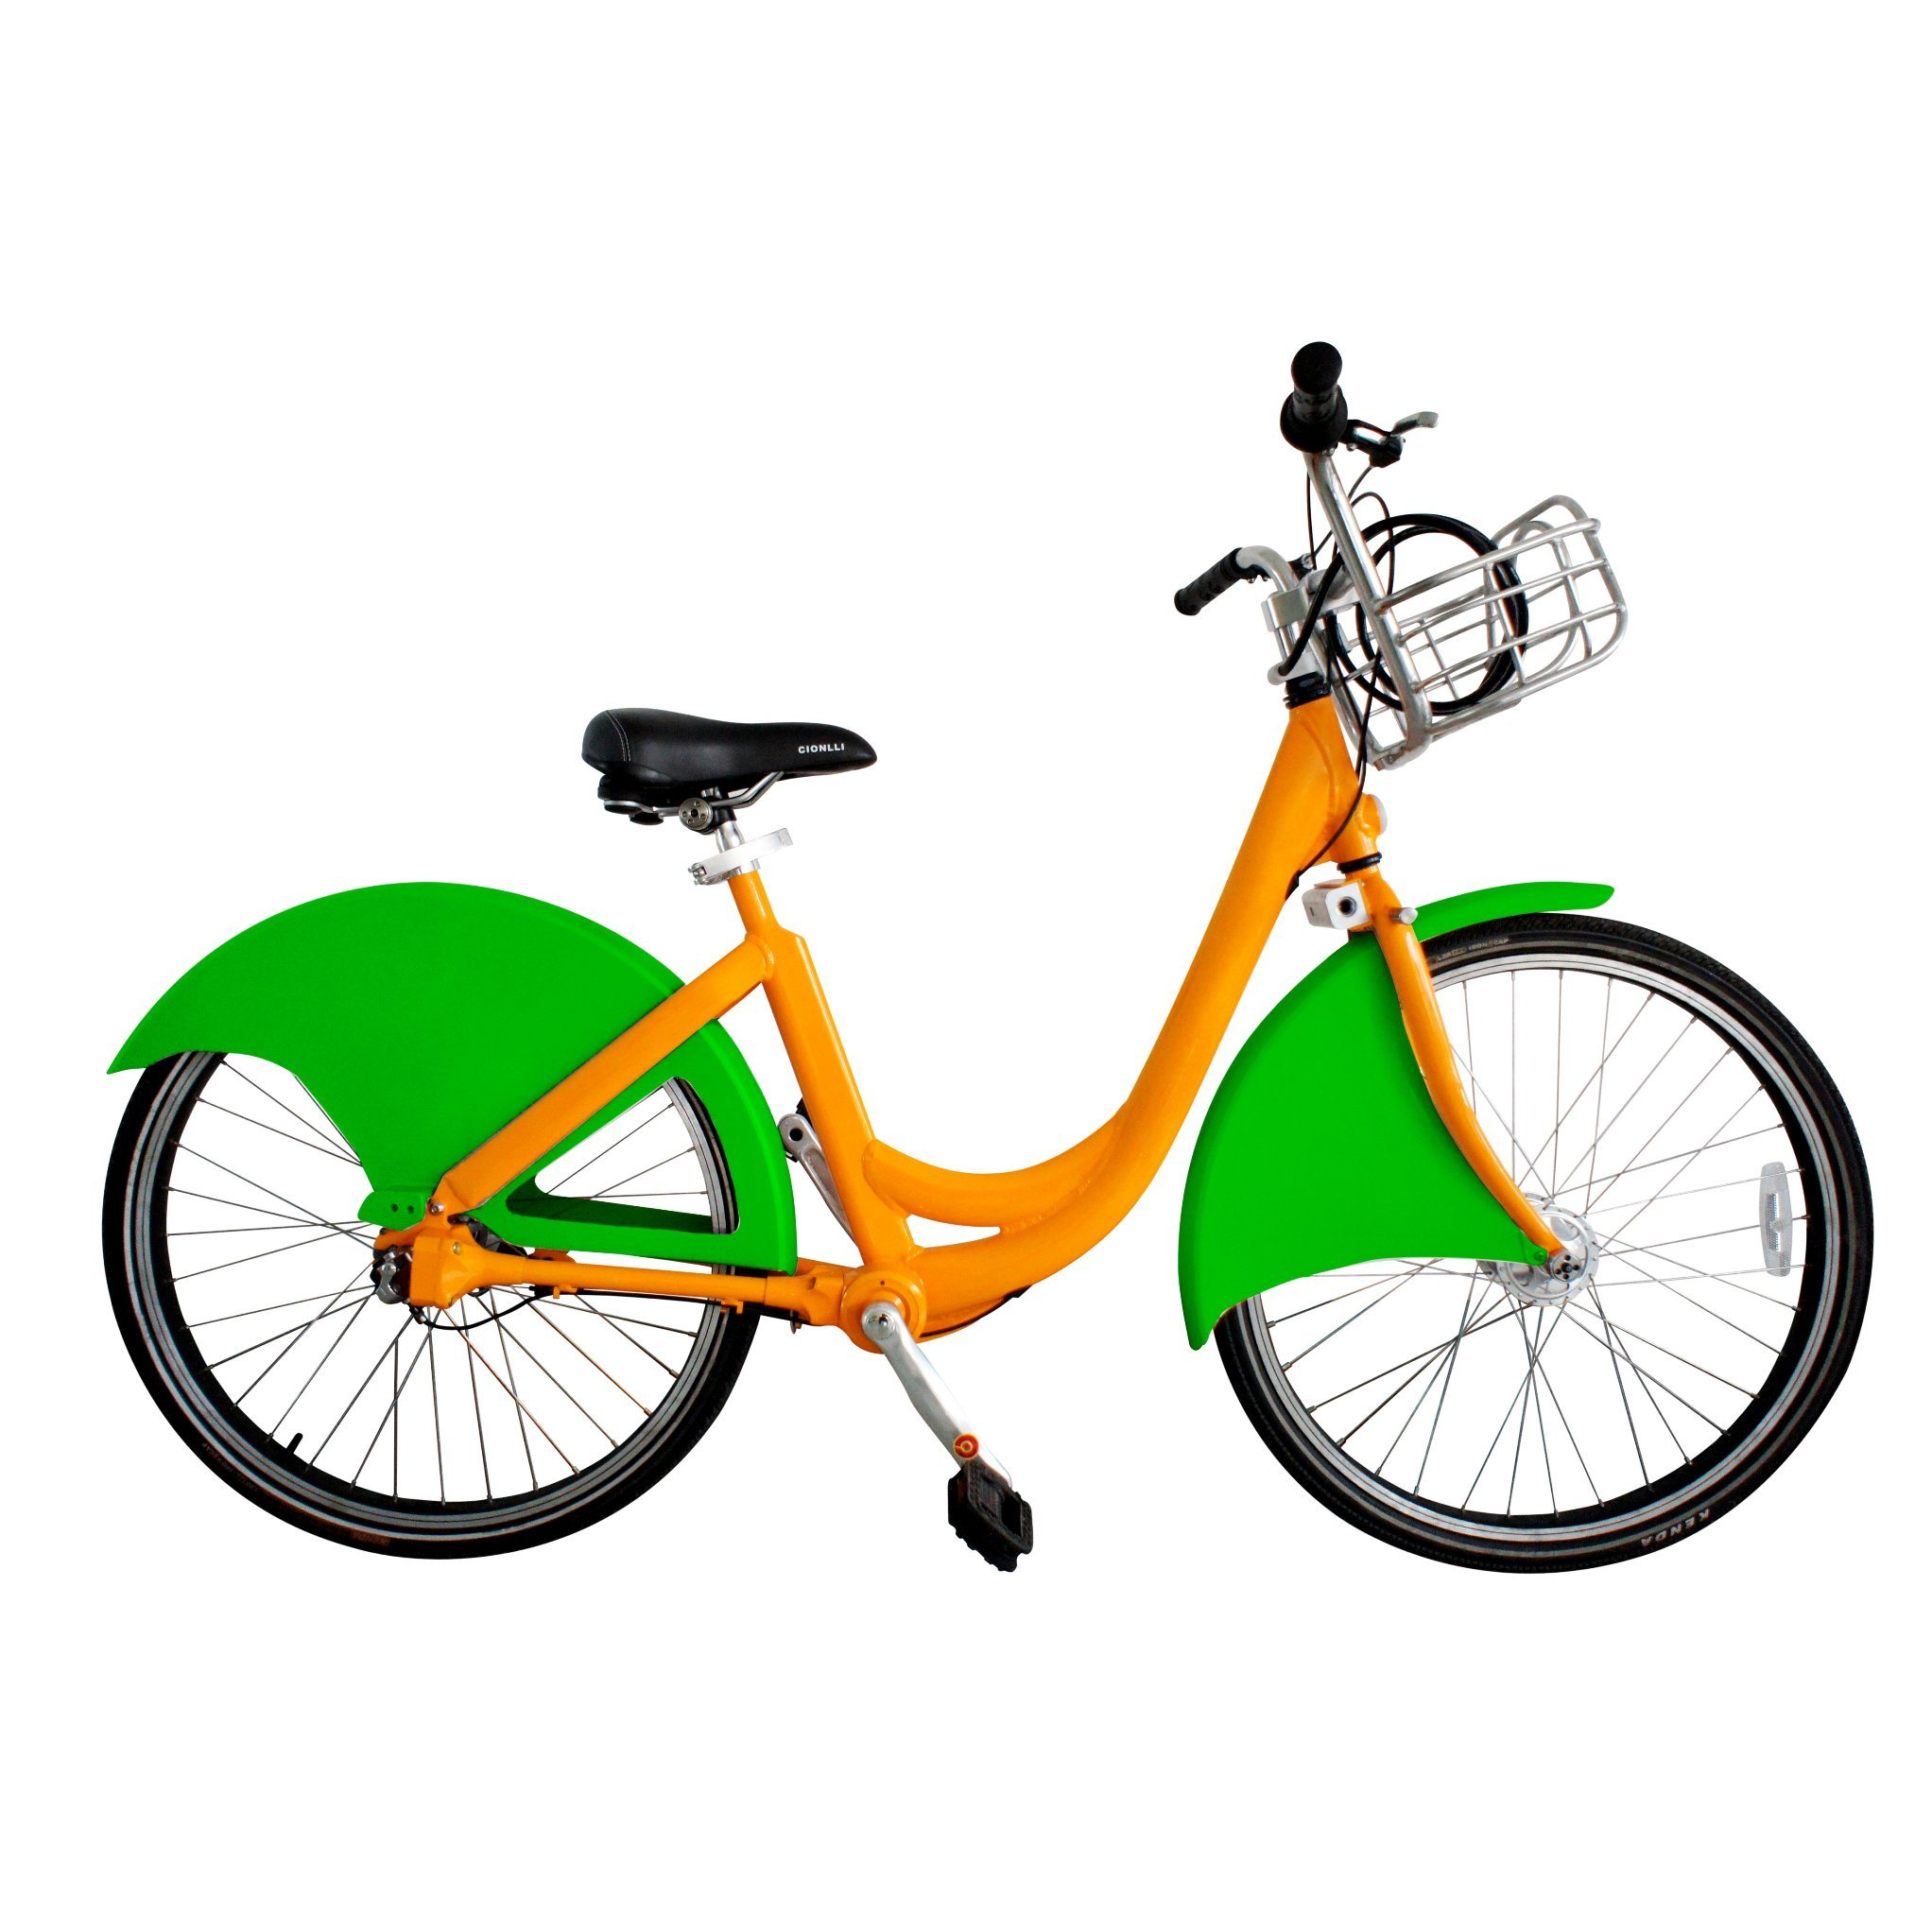 City Rental Bicycle with Aluminum Alloy Frame Self Rent Urban Shaft Drive Bike Without Chain pictures & photos